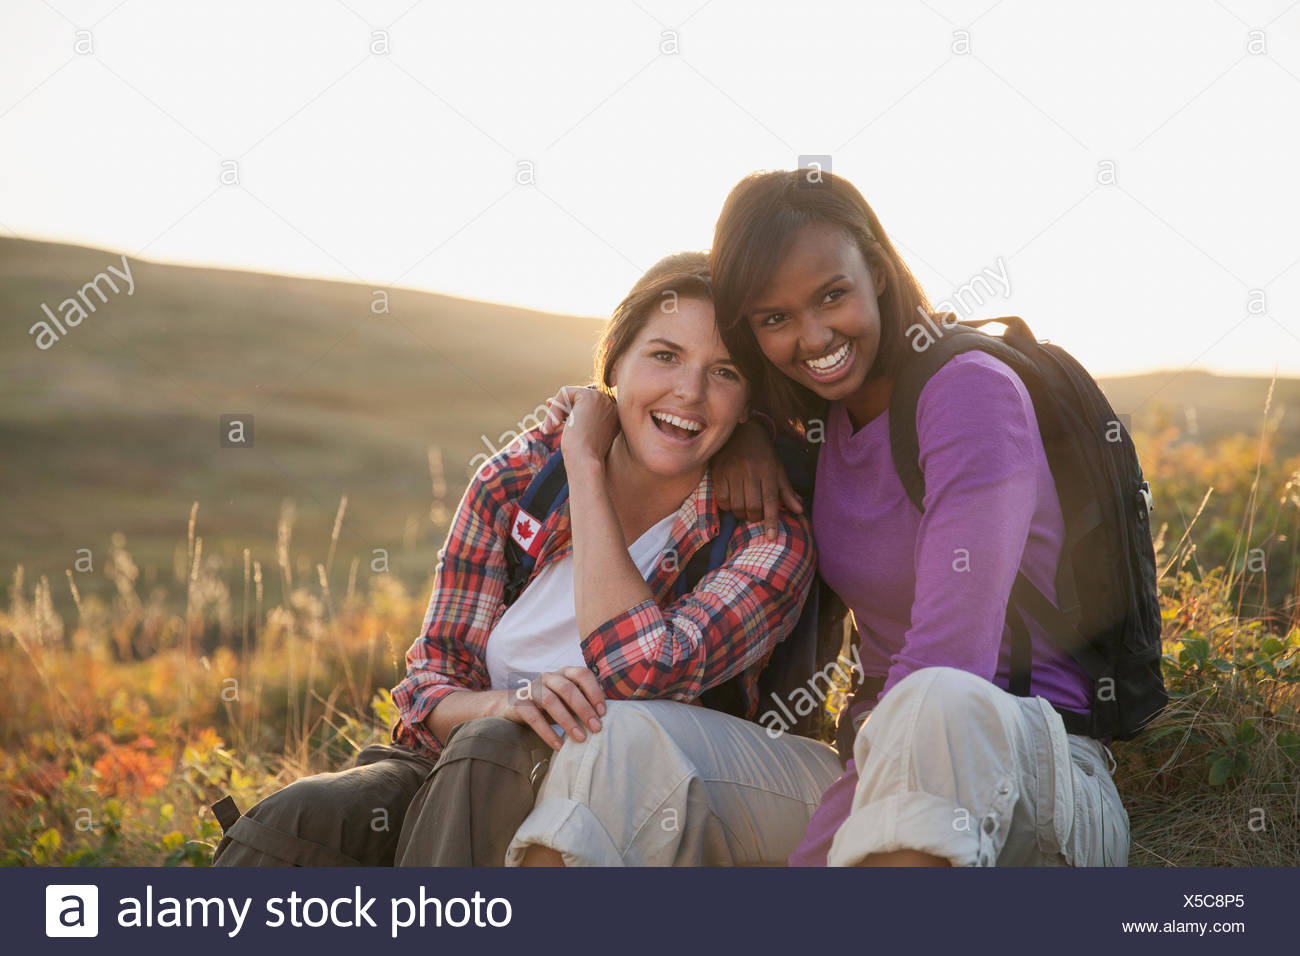 Girlfriends laughing together outdoors. - Stock Image